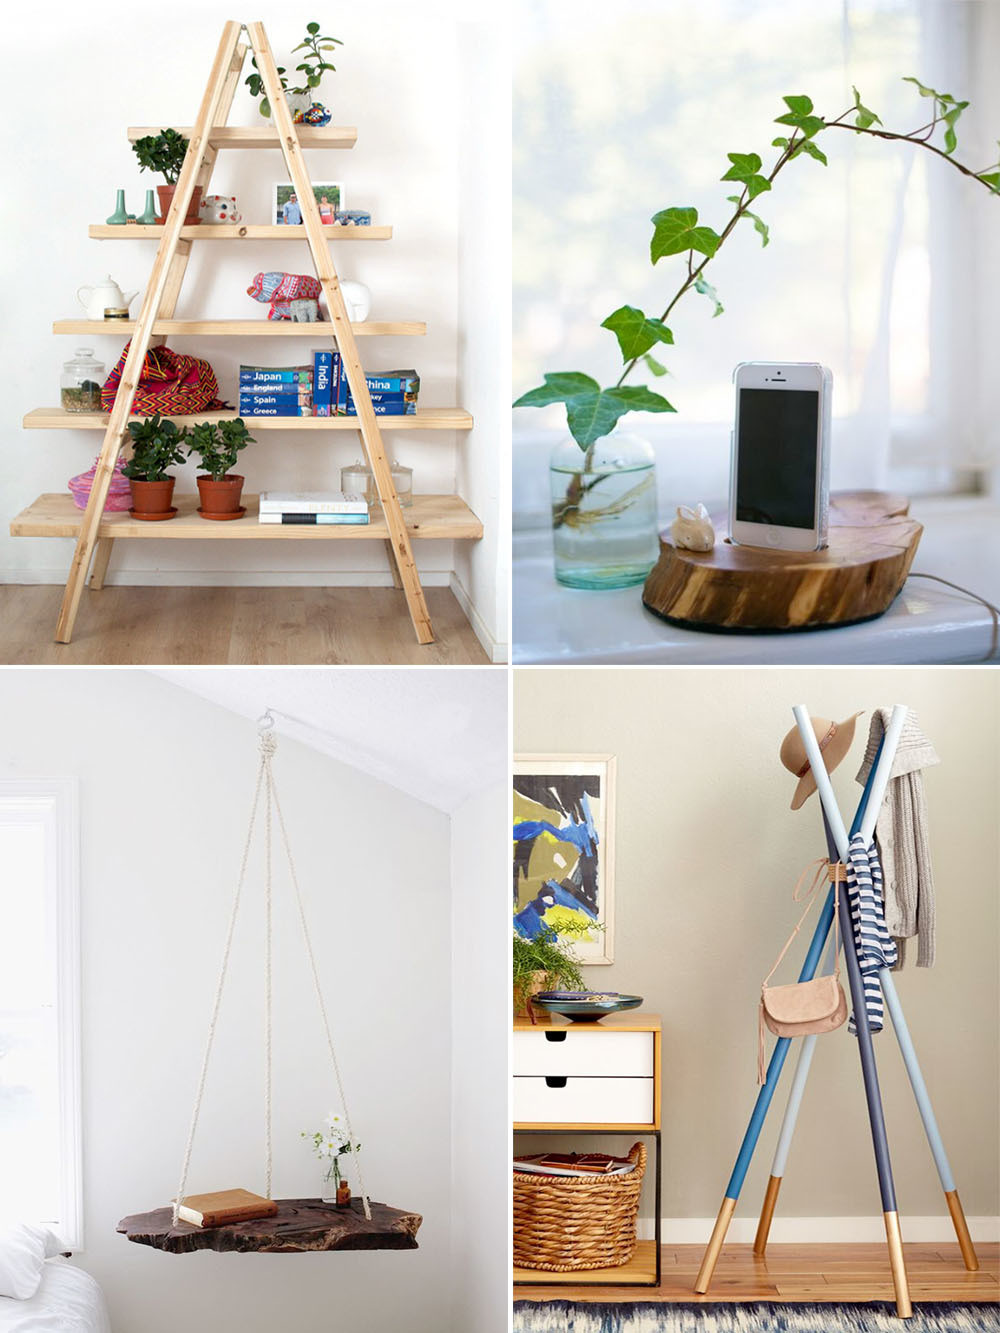 Best ideas about Easy DIY Wood Projects . Save or Pin Roundup 10 Beginner Woodworking Projects Using Basic Now.